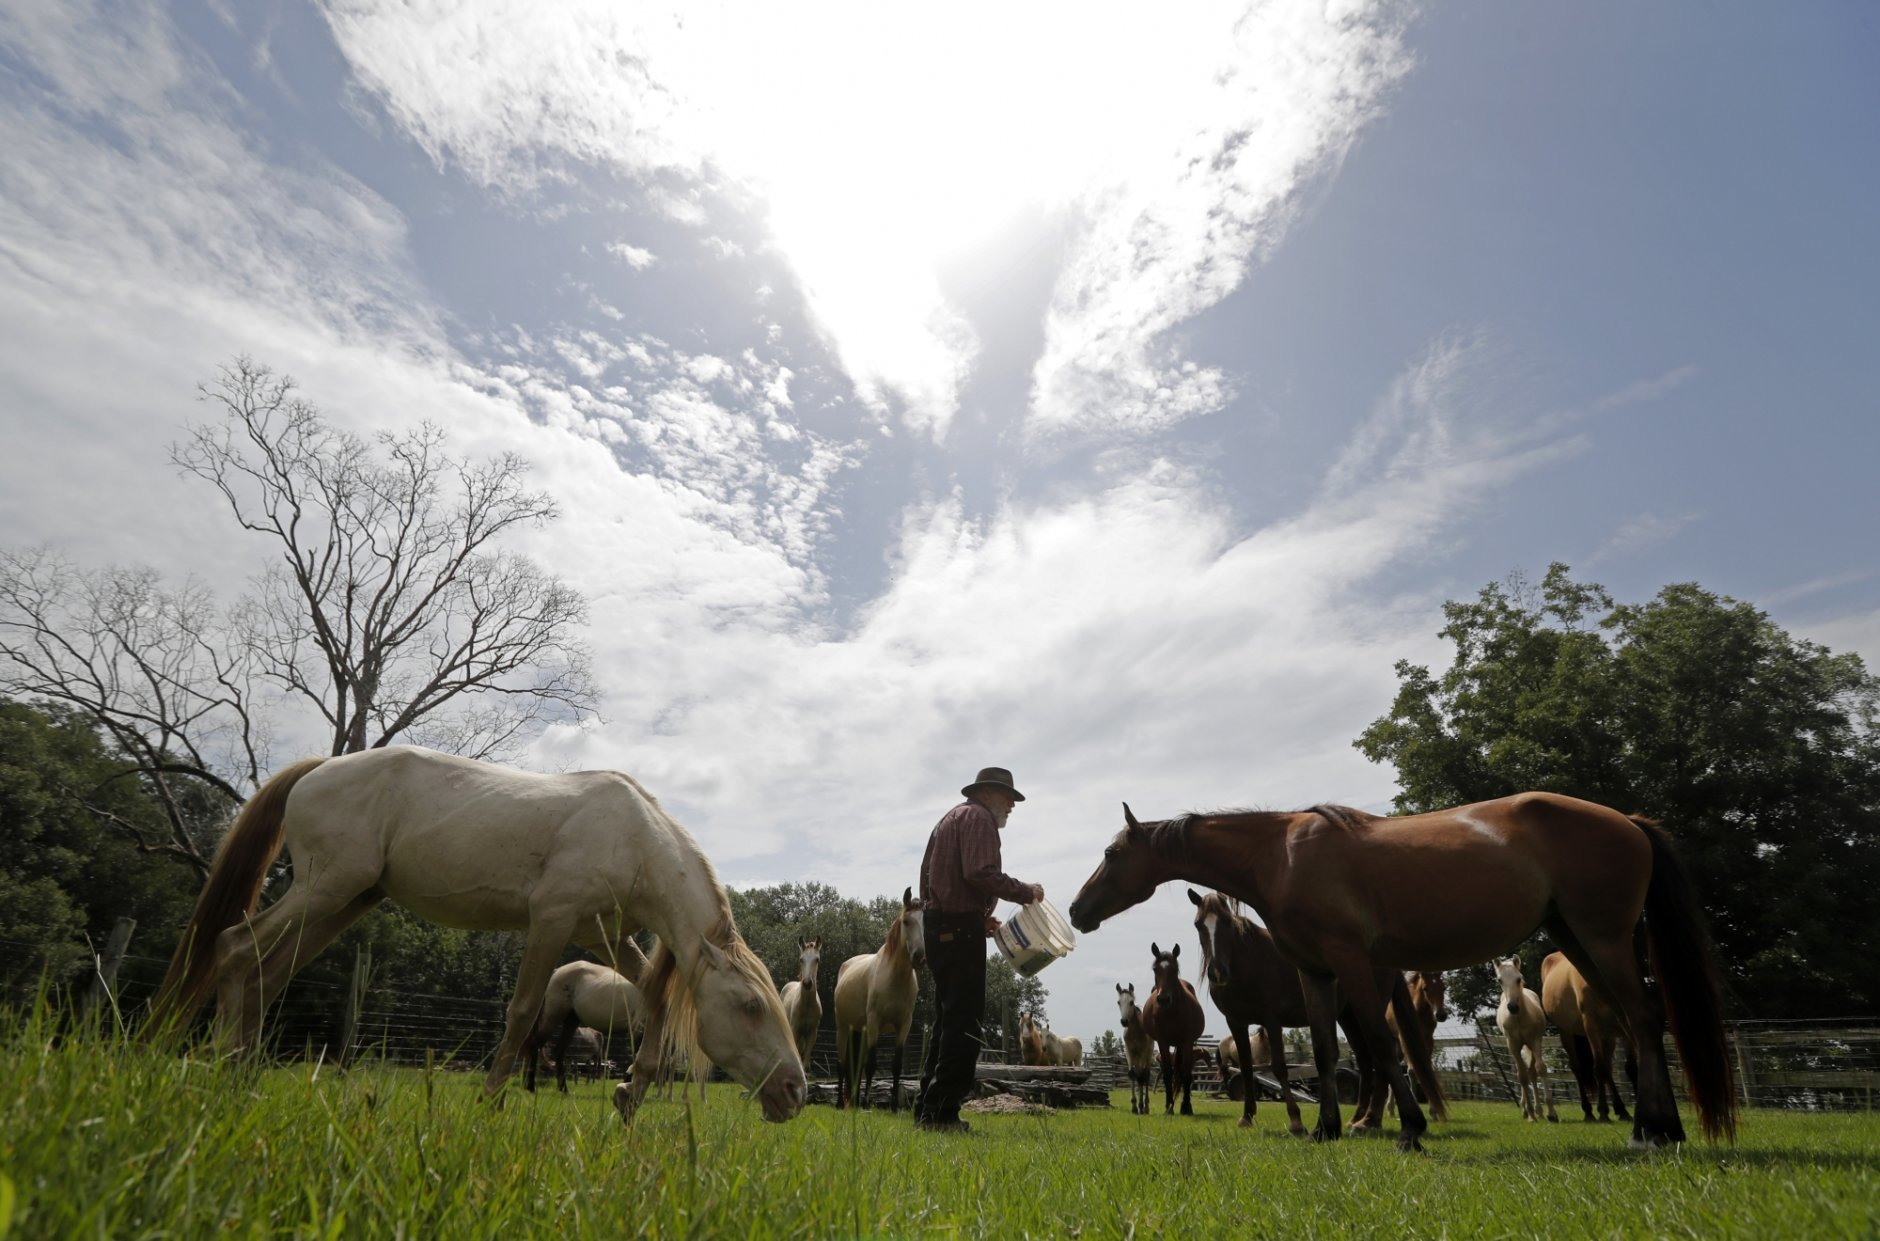 In this July 17, 2018, photo, Bill Frank Brown feeds horses including Choctaw mares on his farm in Poplarville, Miss. The farm had been in Brown's family since 1881 and the livestock there, even longer. Brown had three stallions back then, including DeSoto. He called them pine tacky horses. The Texas A&M veterinary school tested samples of the stallions' DNA, and they matched those of Rickman's Choctaws. (AP Photo/Gerald Herbert)